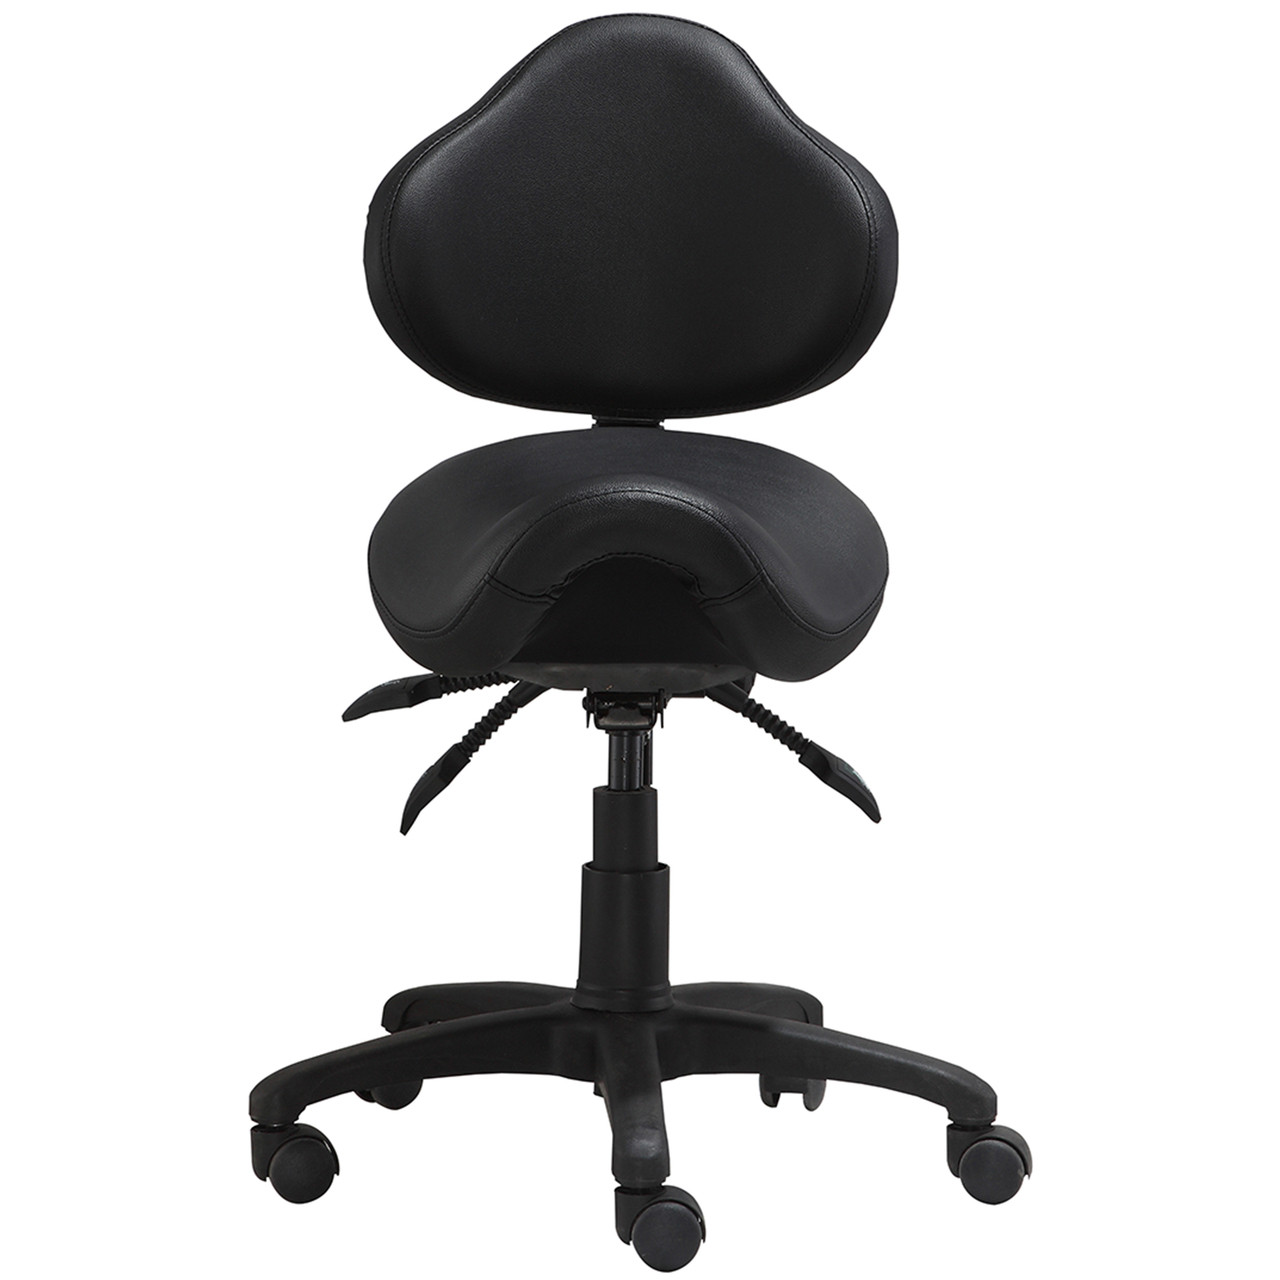 Saddle Office Chair Adjustable Rolling Saddle Stool With Adjustable Seat And Backrest